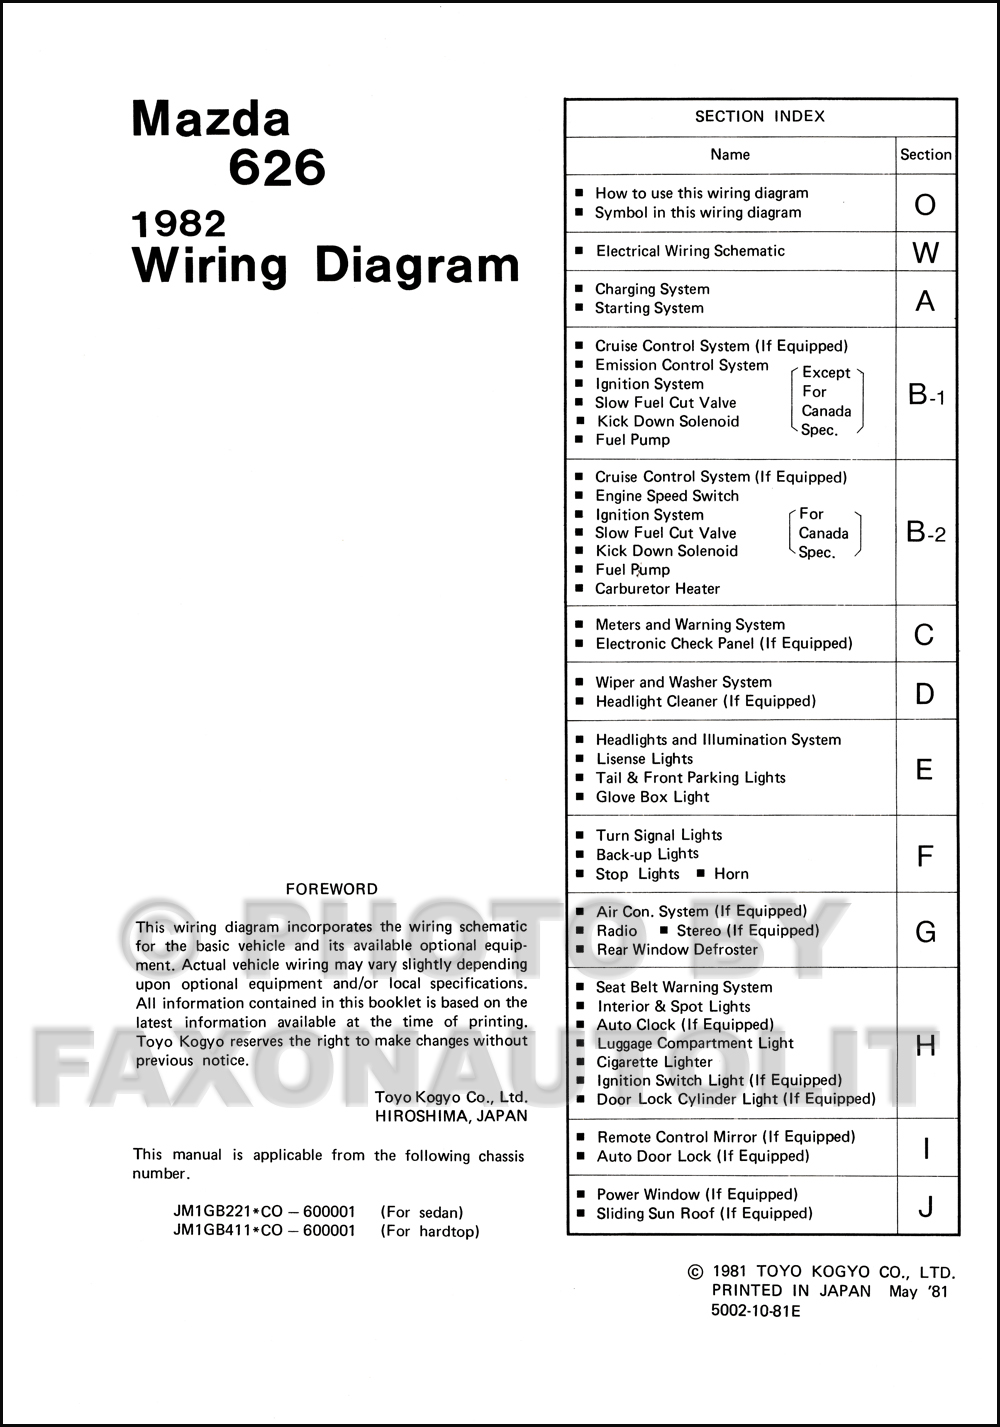 Diagram 1995 Mazda 626 Wiring Diagram Manual Full Version Hd Quality Diagram Manual Diagramgoleyb Apd Audax It